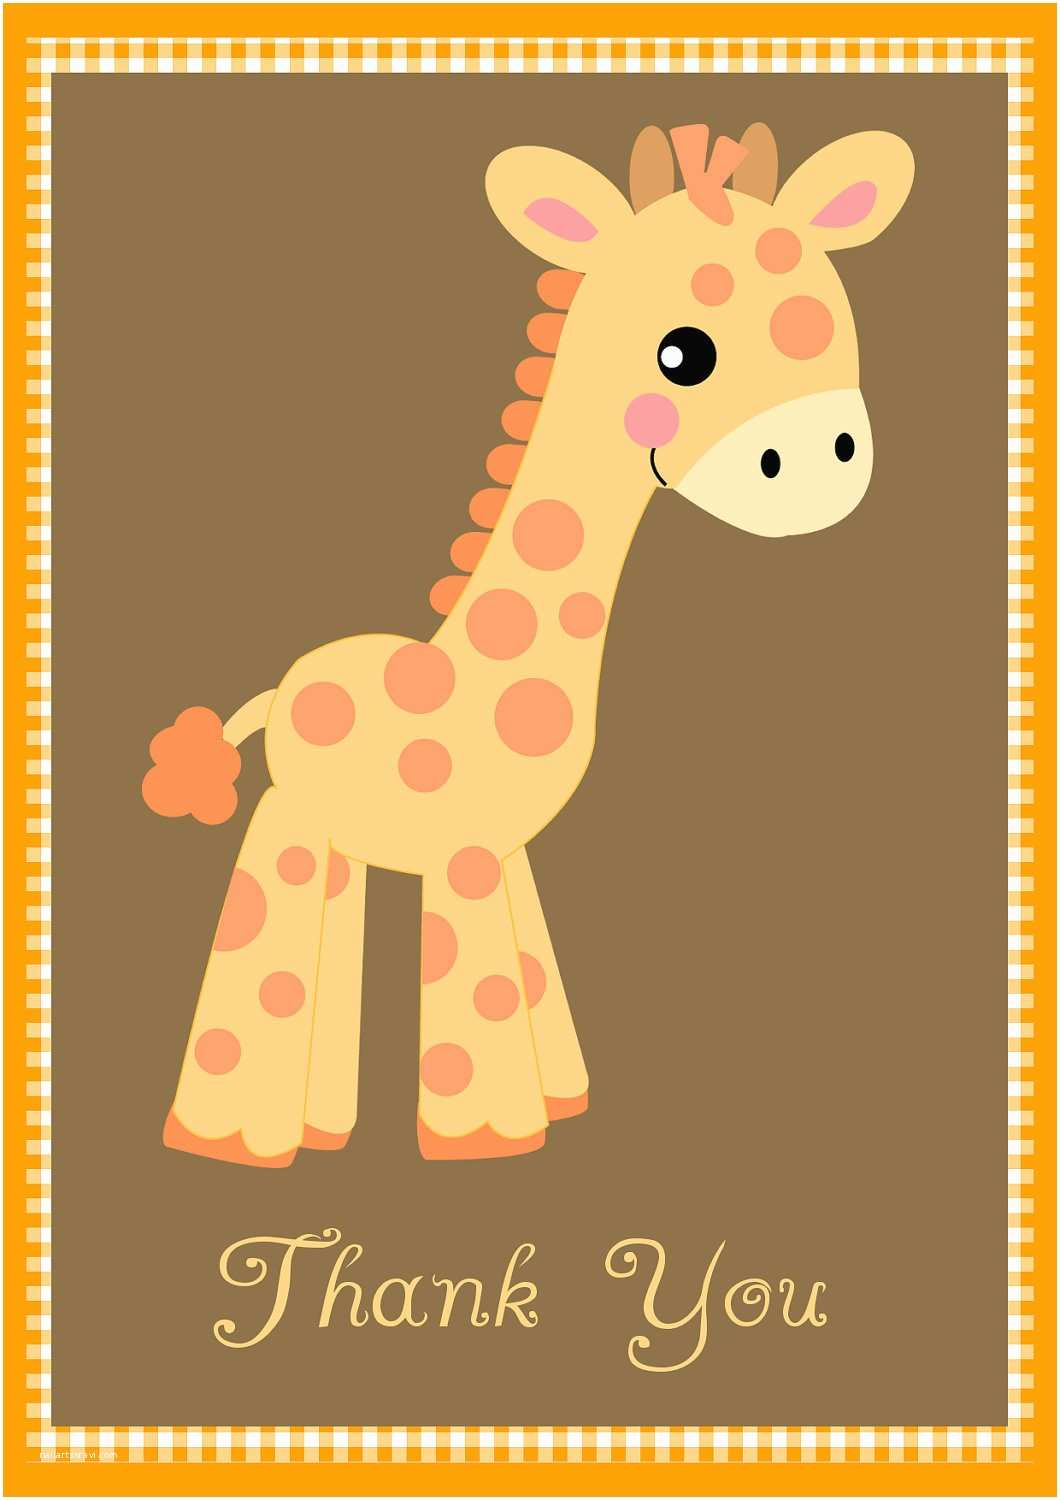 Giraffe Baby Shower Invitations Free Giraffe Birthday and Baby Shower Invitation Templates